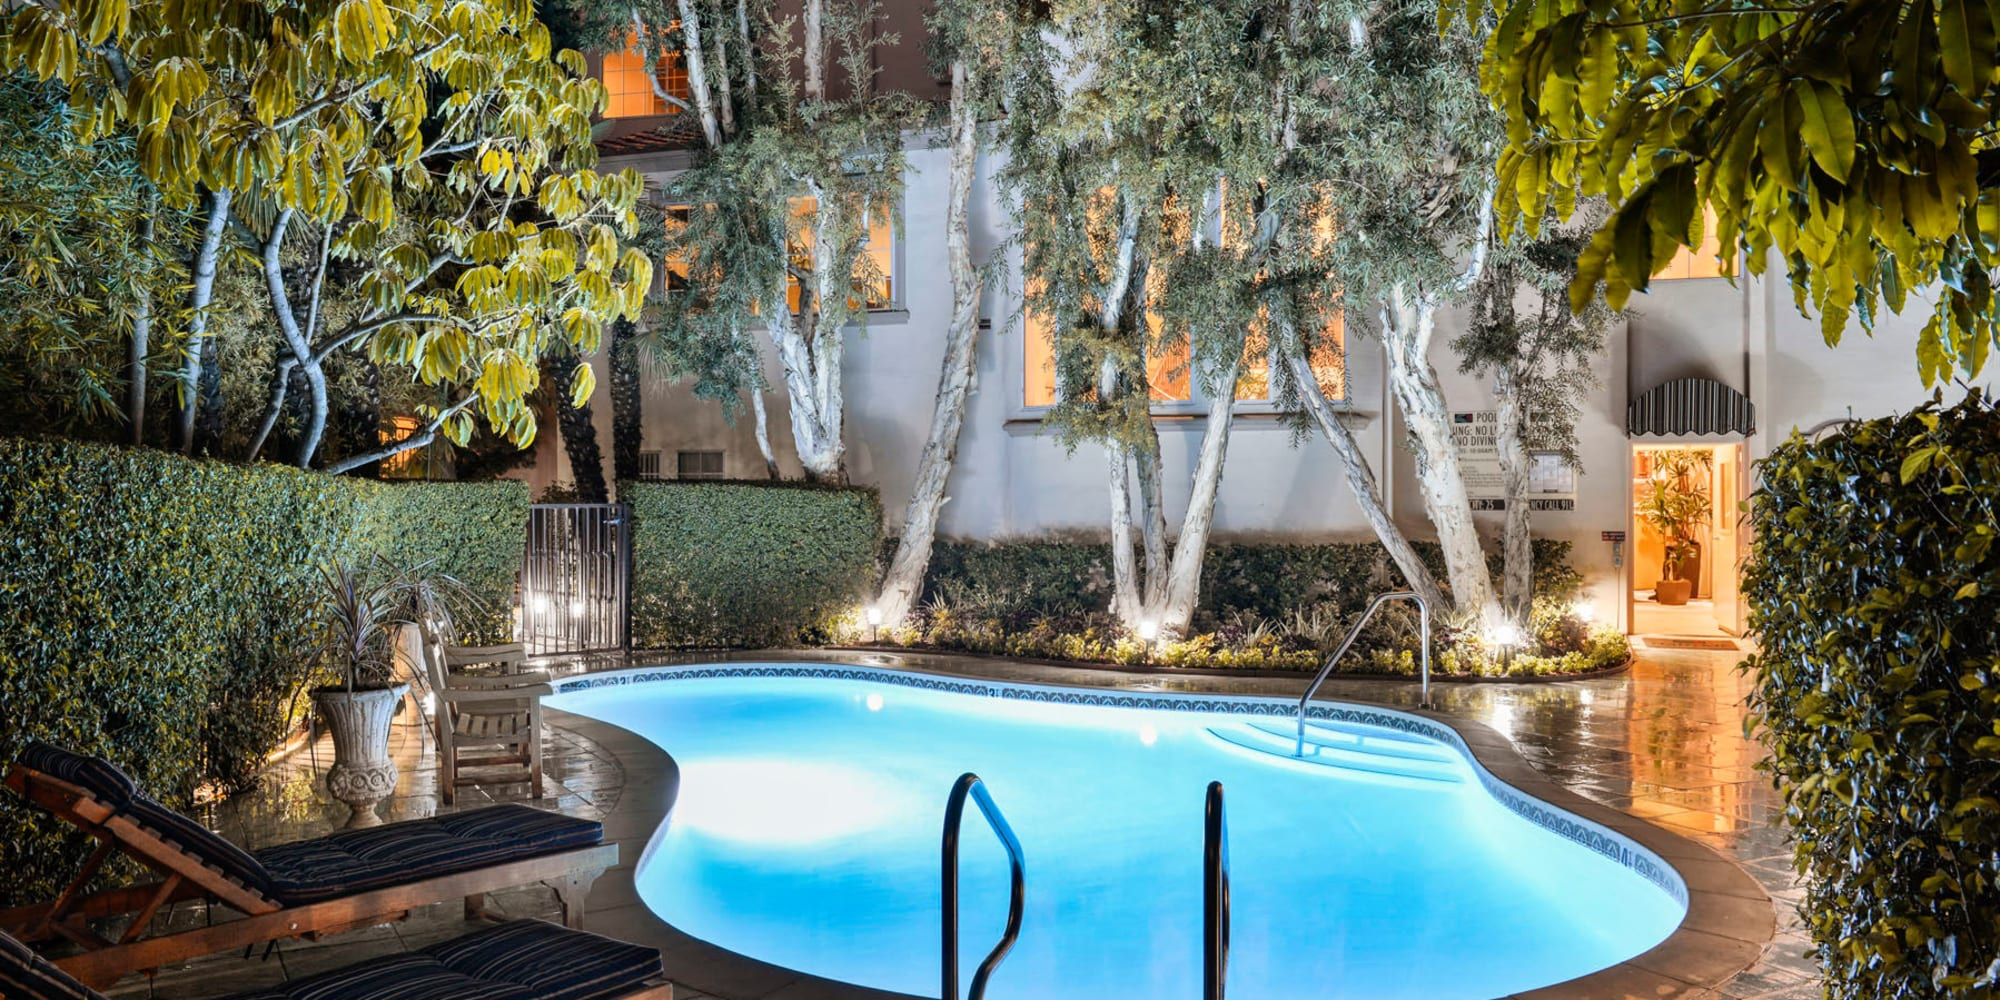 Underwater lights illuminating one of the swimming pools in the early evening at L'Estancia in Studio City, California